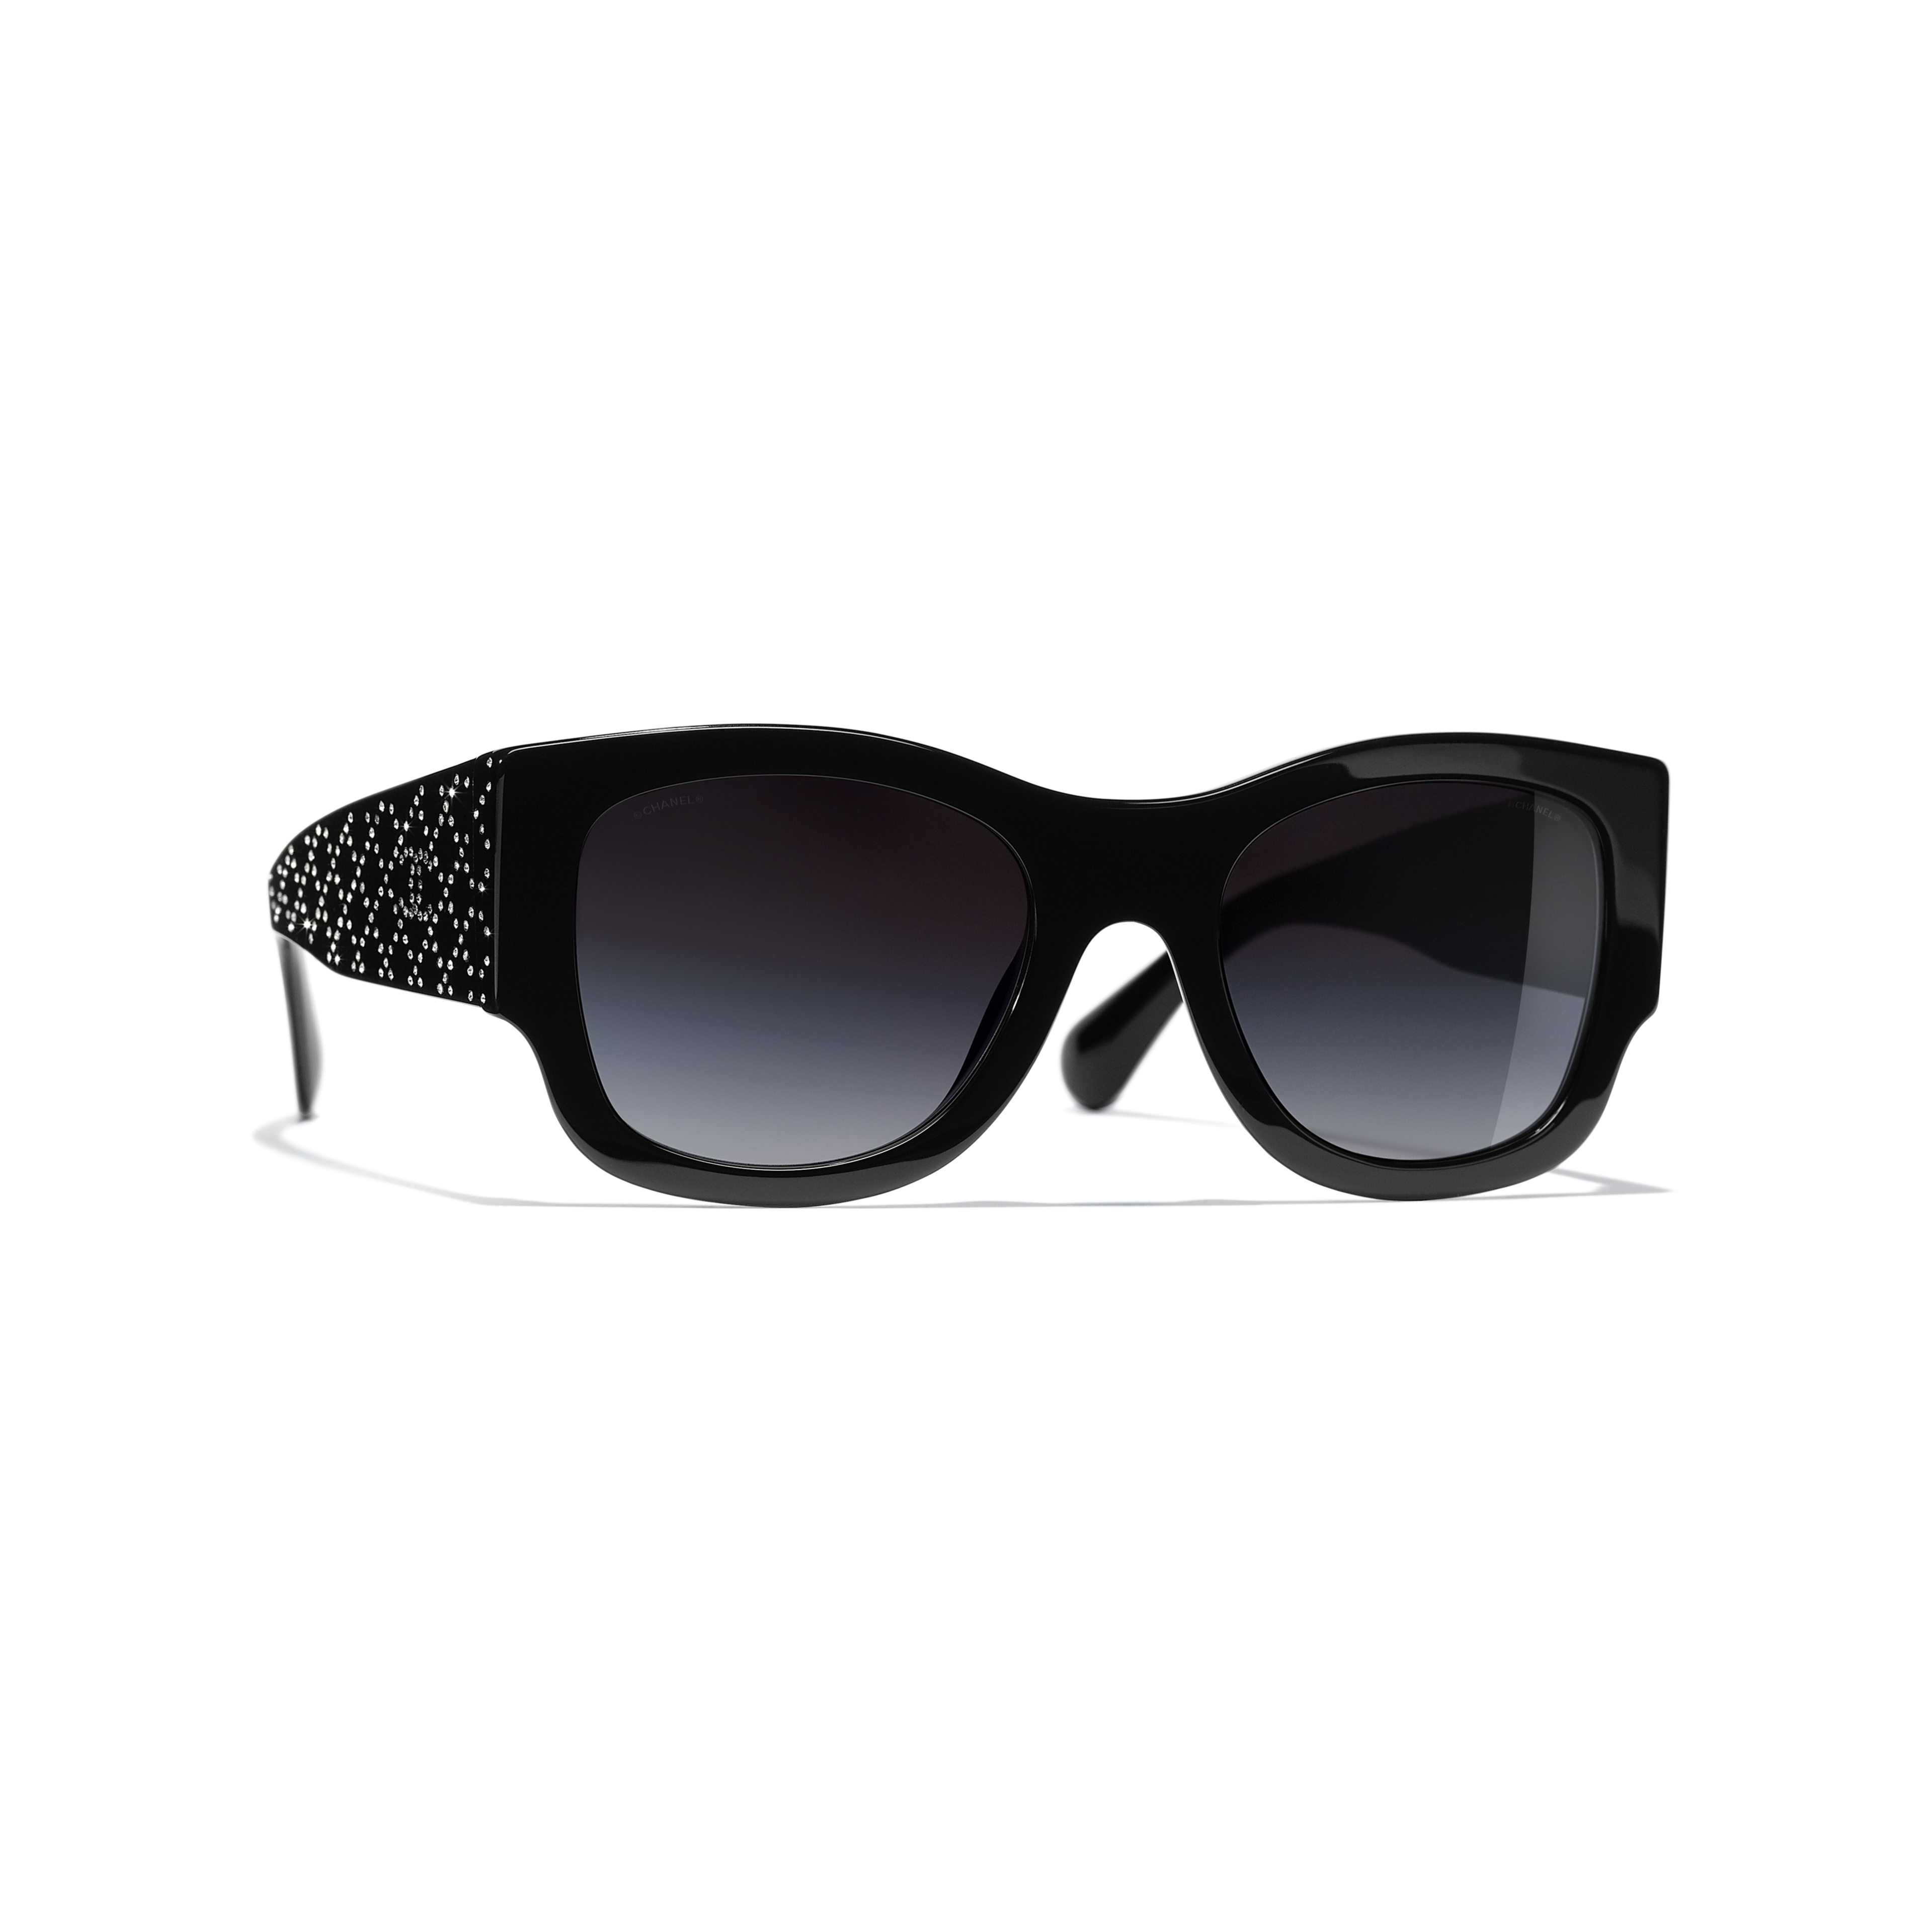 Rectangle Sunglasses - Black - Acetate & Strass - Default view - see full sized version